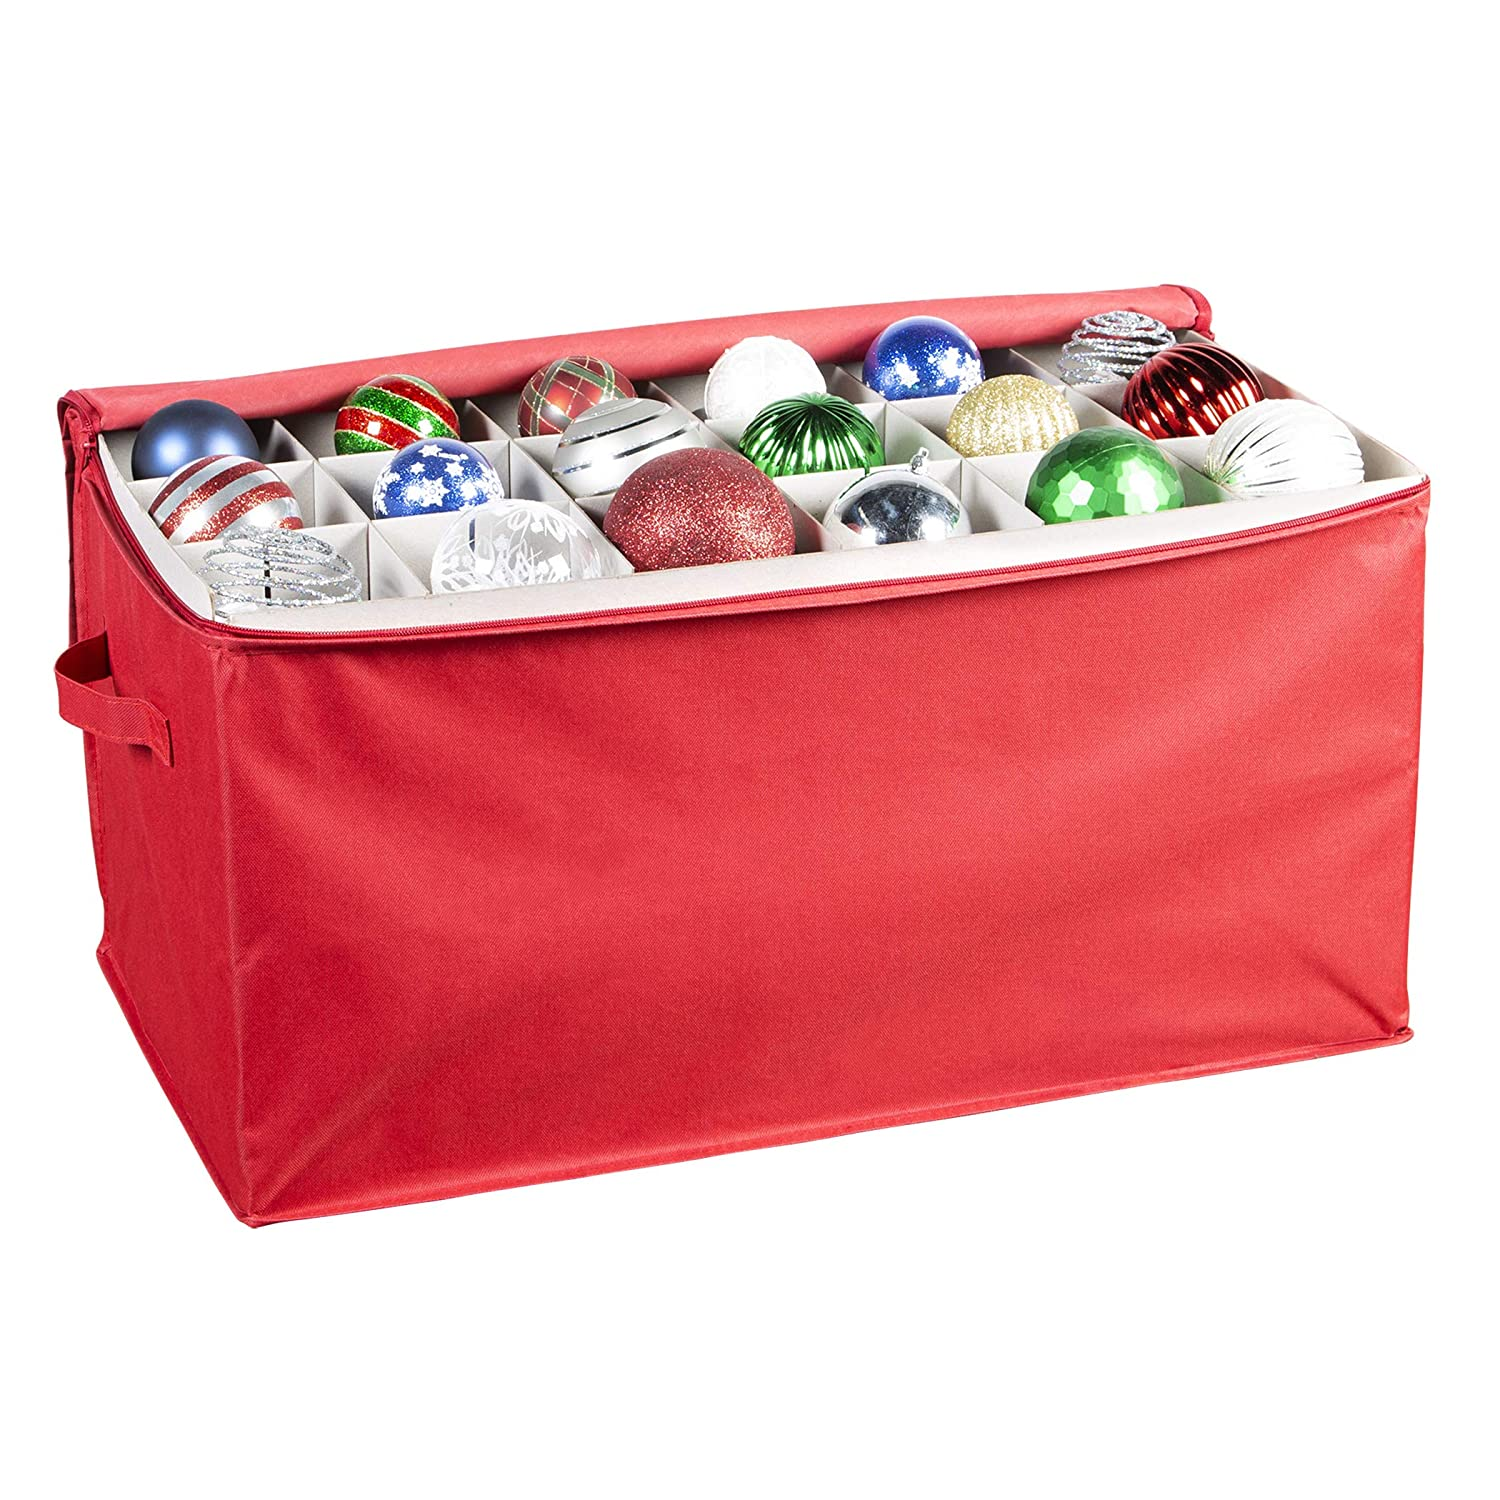 Richards Homewares Holiday Ornaments Storage Cube with 54 Individual Compartments - Made with 600 Denier Polyester Fabric - Convenient Handle Hold N Storage No Model